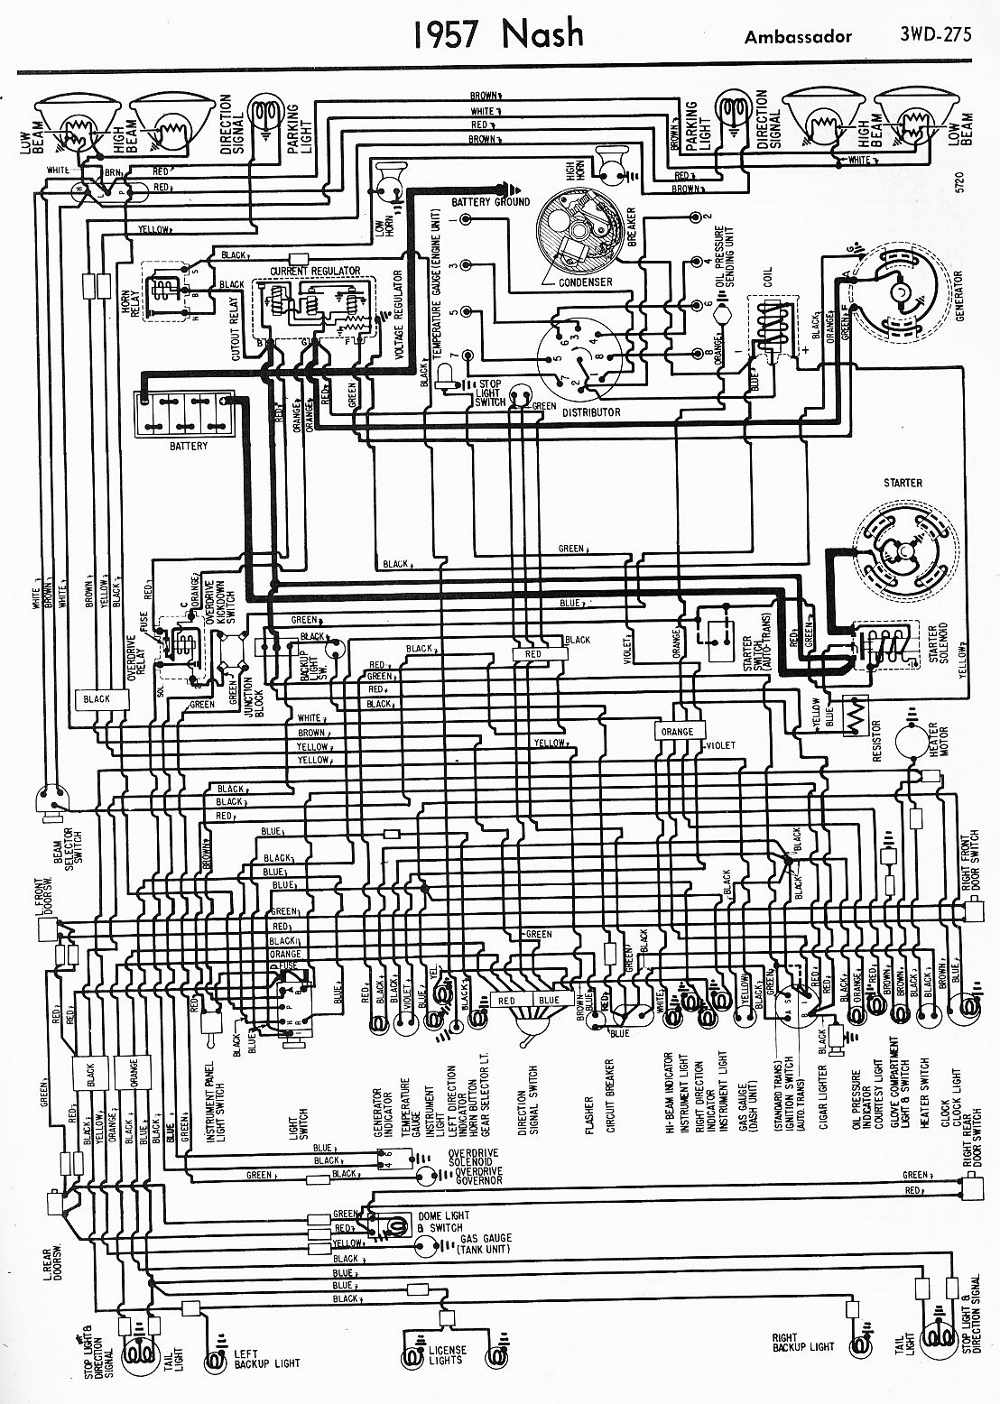 Nash Car Manuals Wiring Diagrams Pdf Fault Codes 1948 Chevy Diagram Download